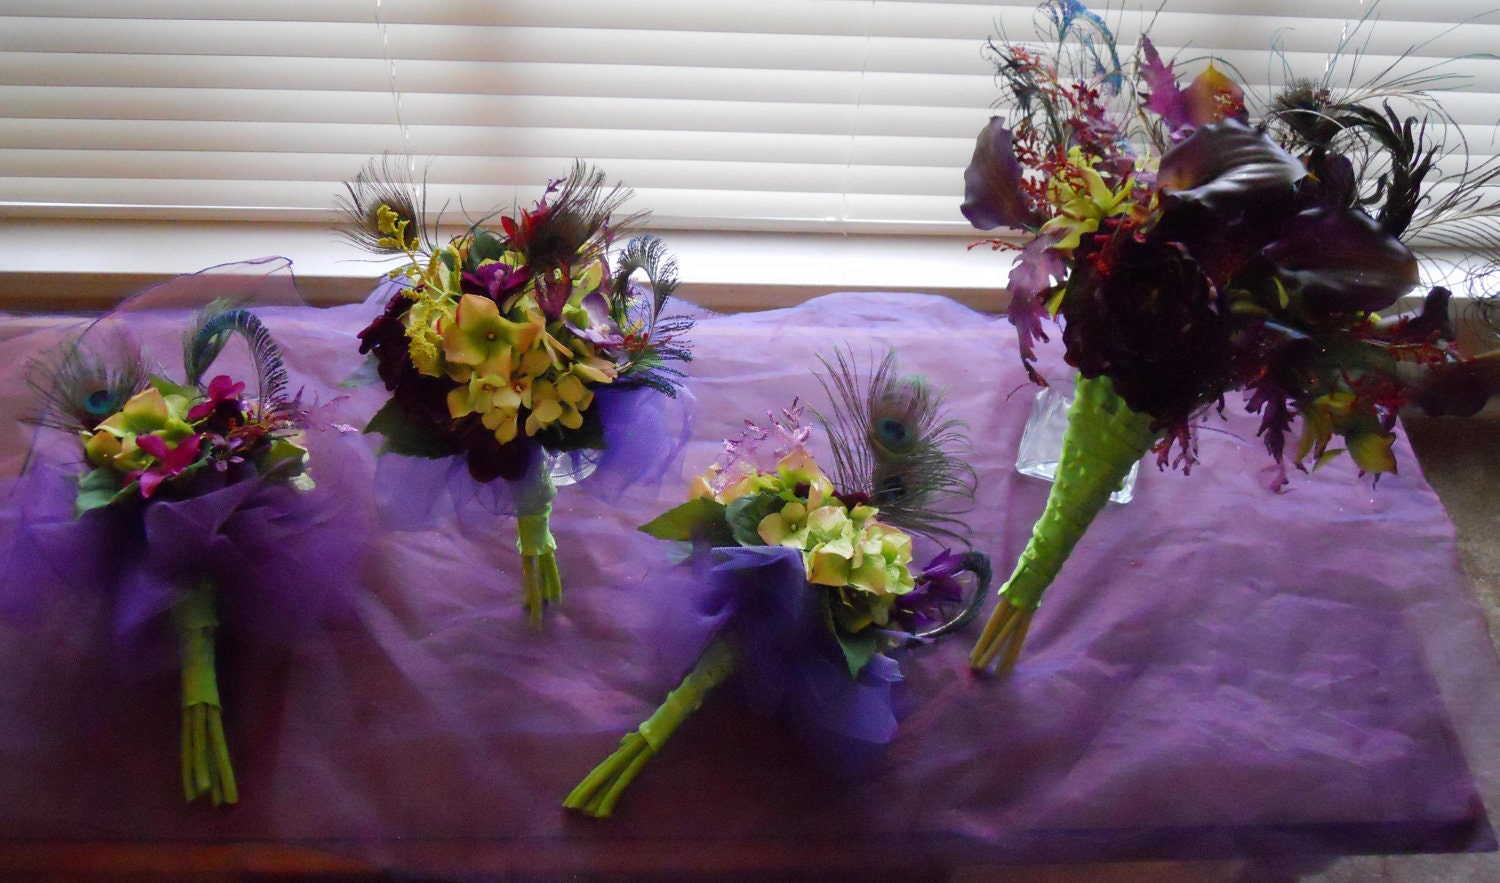 Purple Peacock Themed Wedding Bouquet From mayblue83